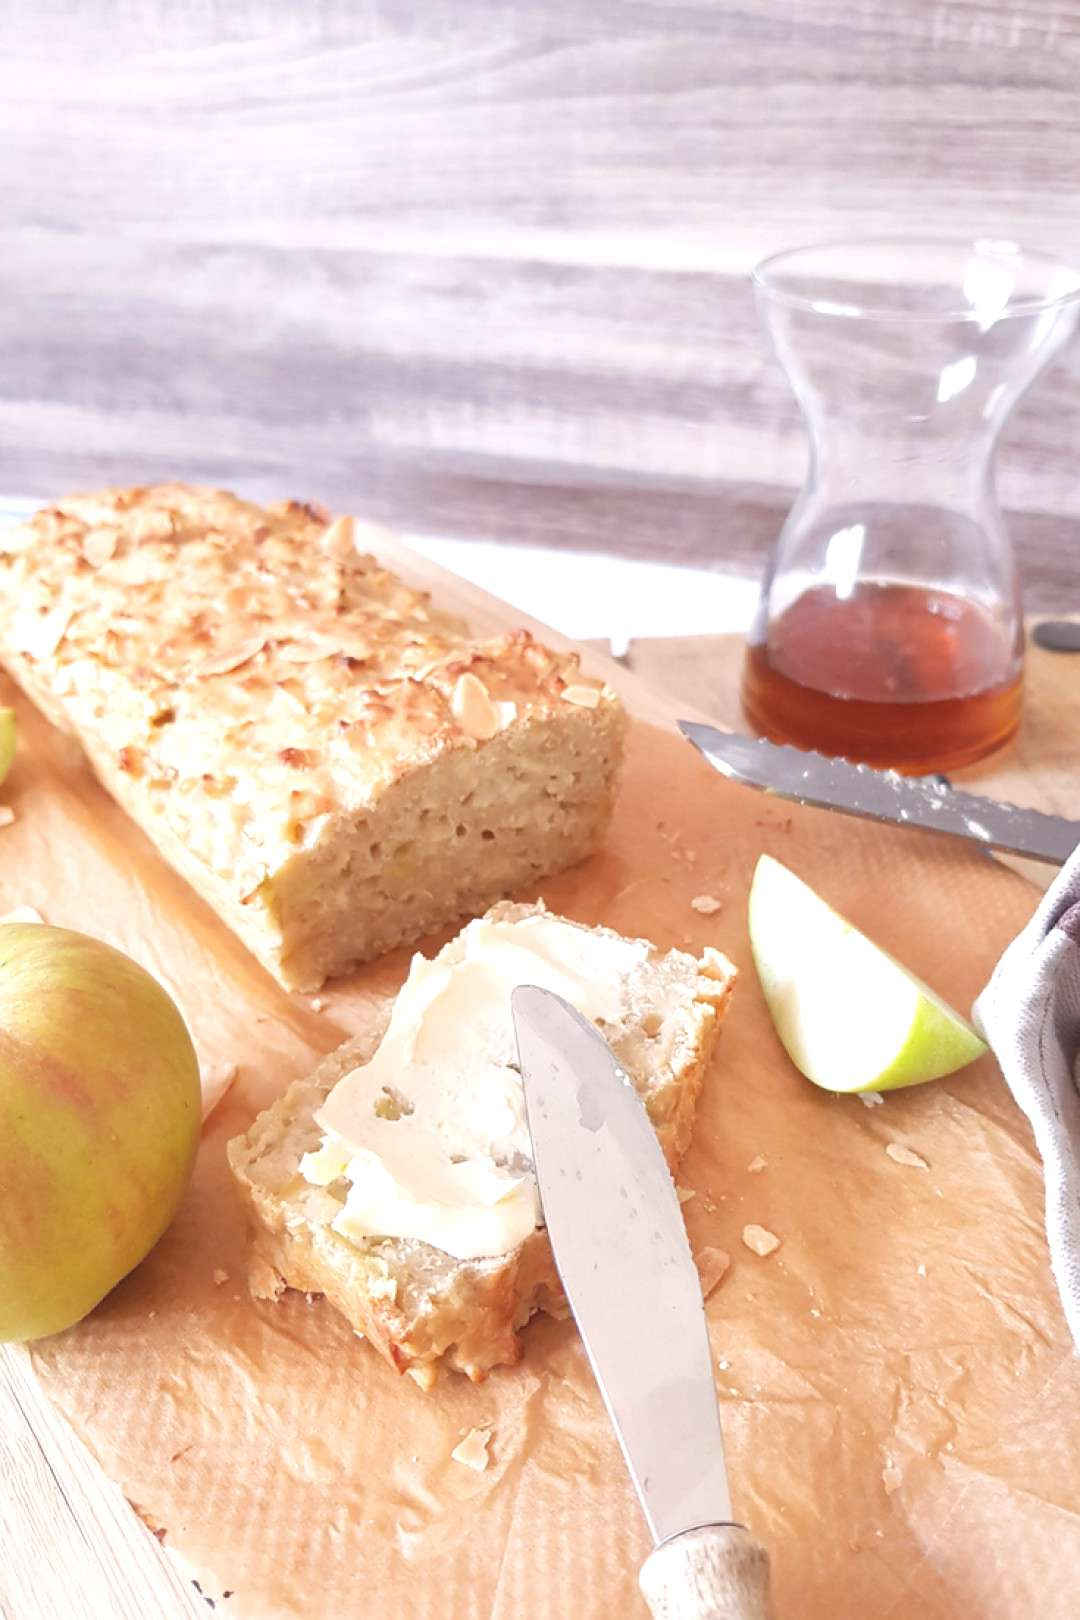 All about the apple - apple bread with almonds and other recipes -  bread with almonds. The bread t